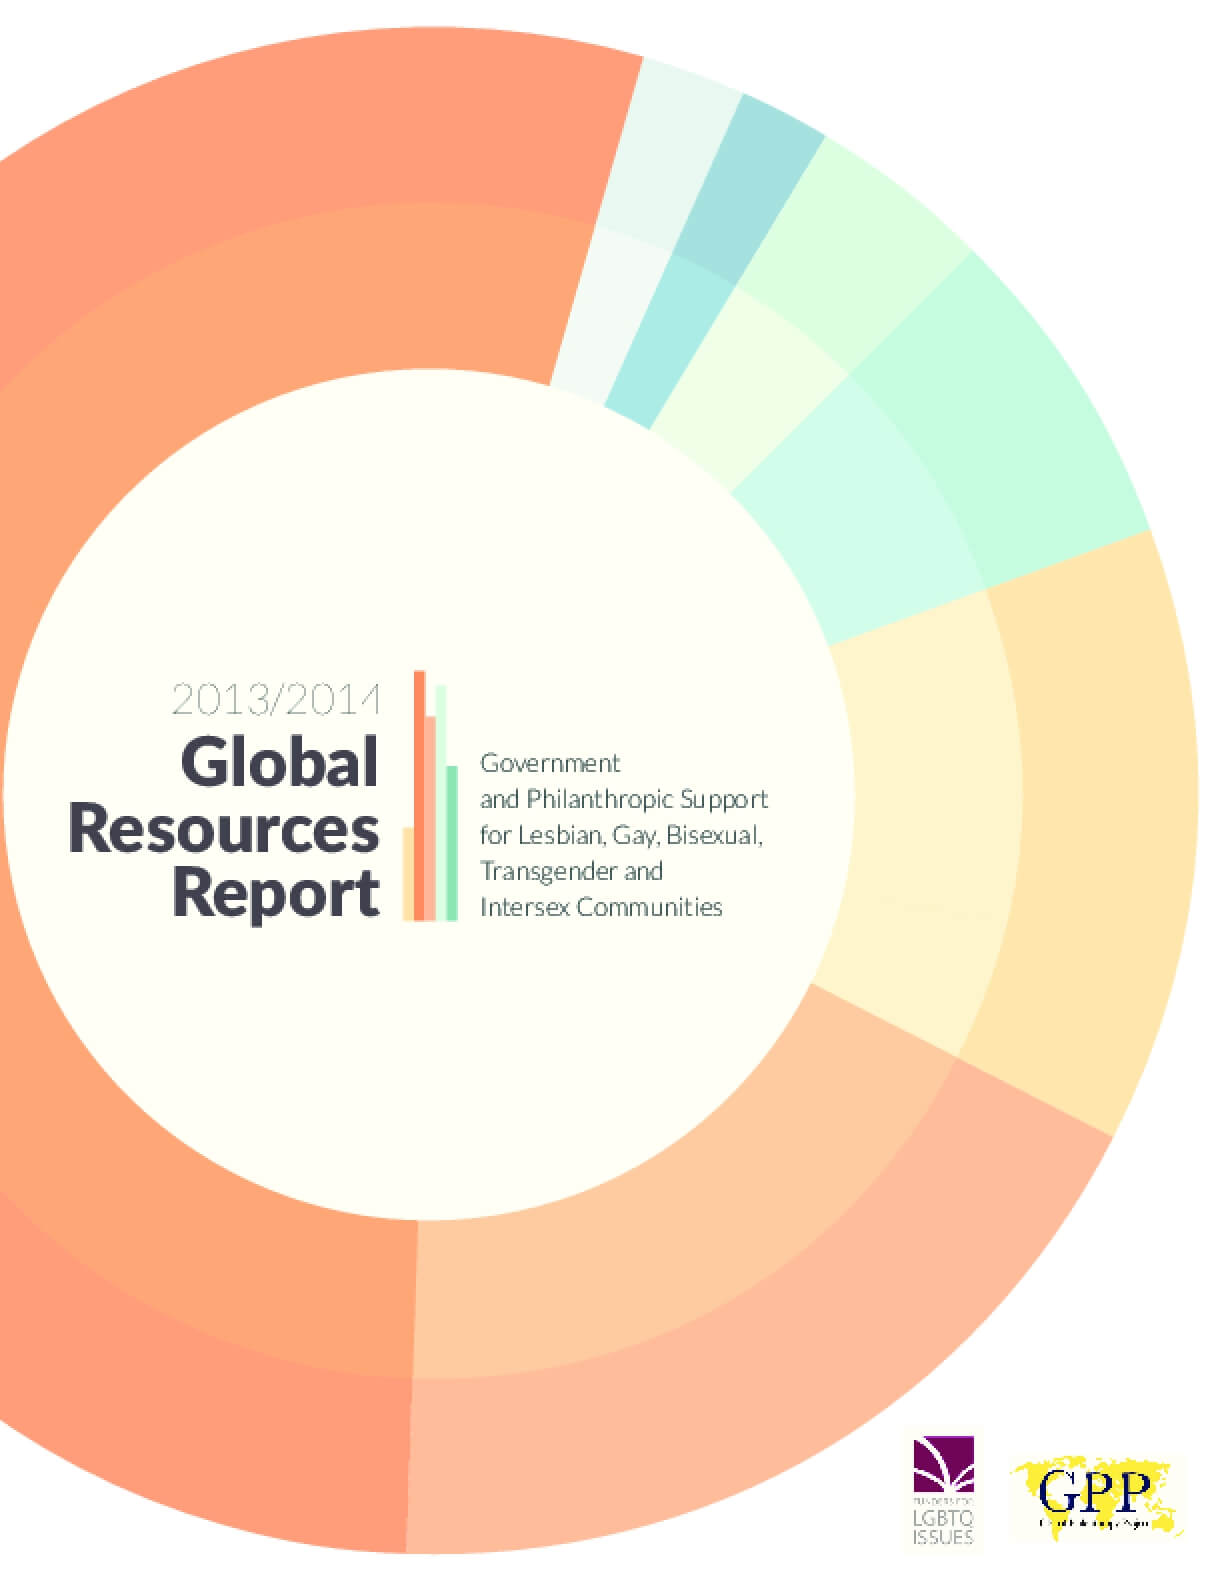 2013-2014 Global Resources Report: Government and Philanthropic Support for Lesbian, Gay, Bisexual, Transgender and Intersex Communities